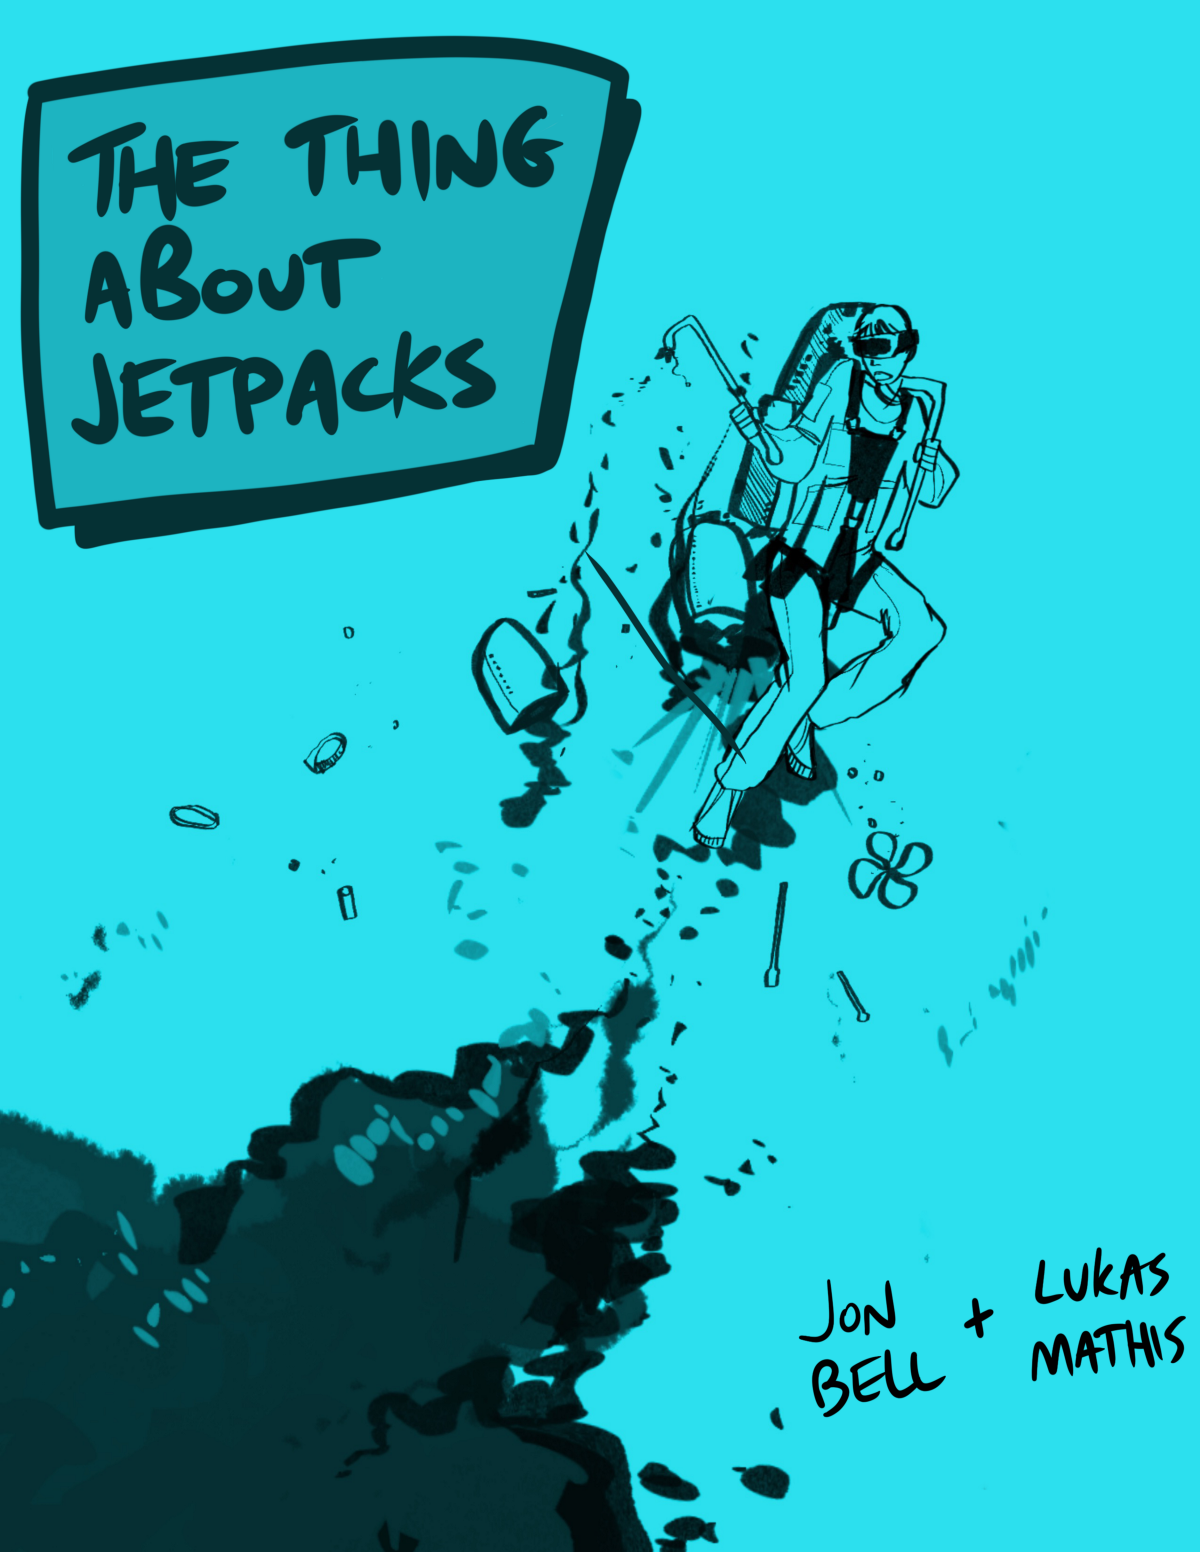 The Thing About Jetpacks - Jon Bell - Medium